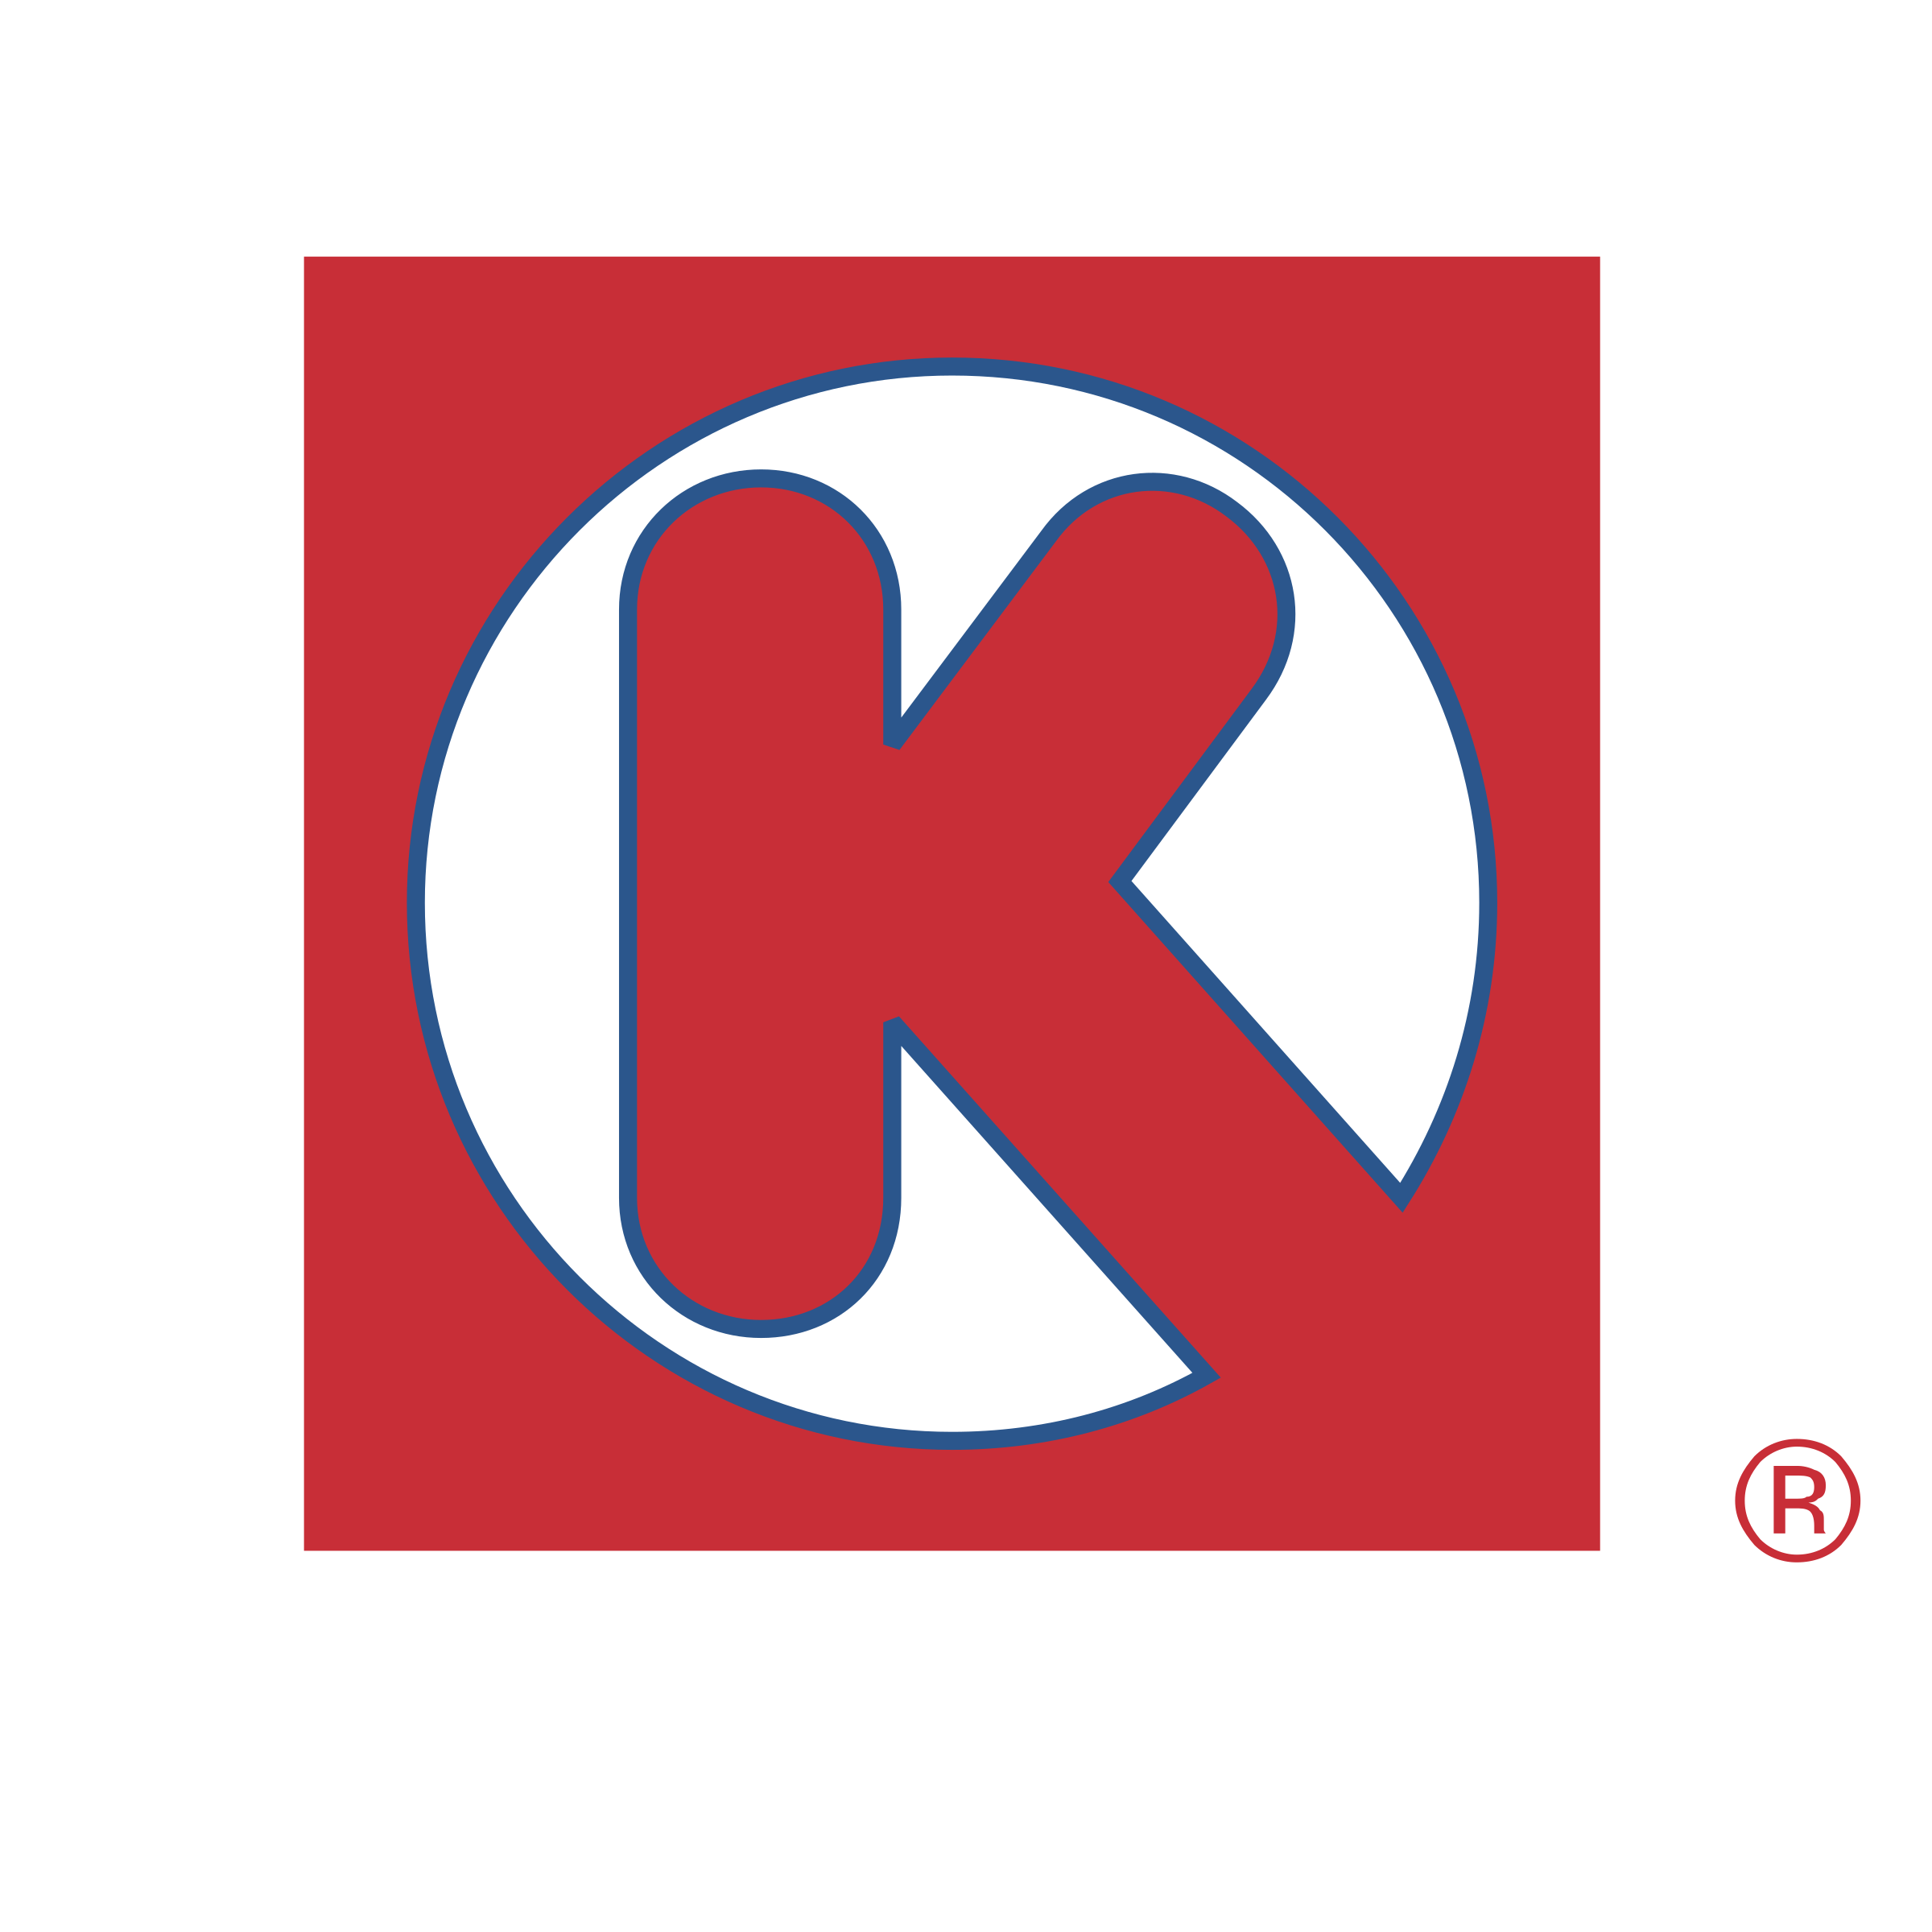 Circle k logo png. Transparent svg vector freebie